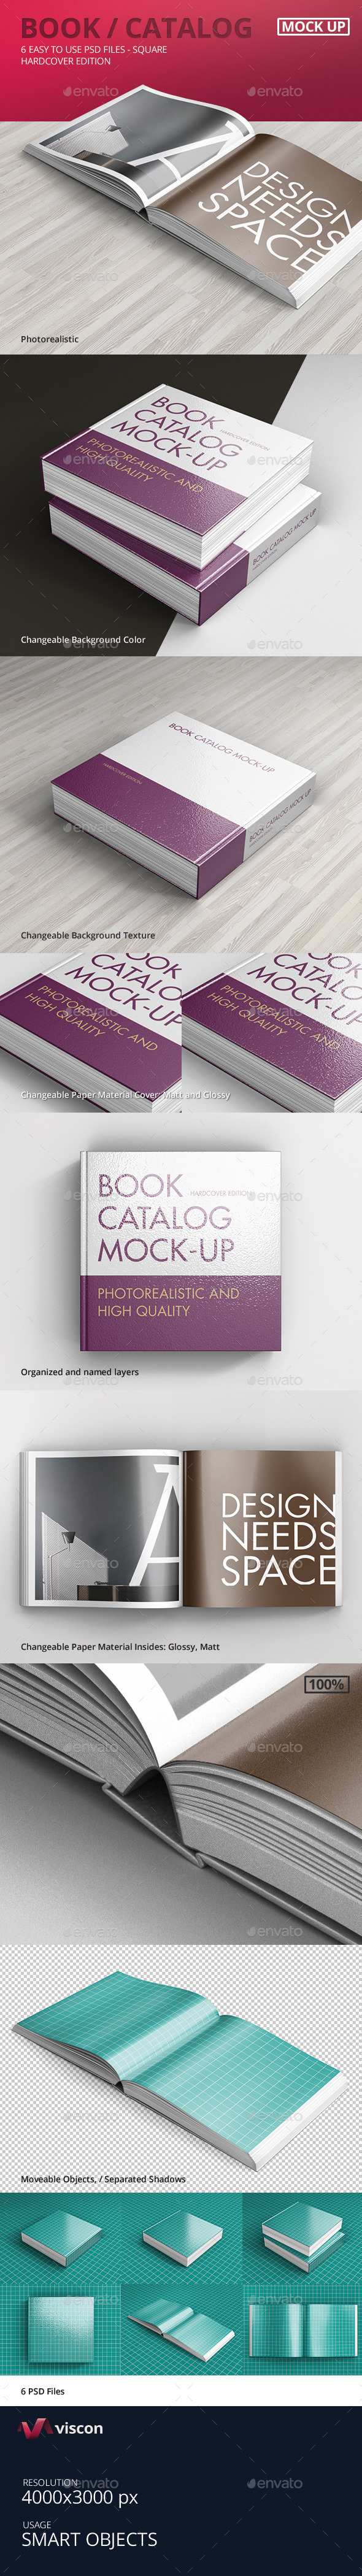 Book / Catalog Mock-Ups Hardcover Square - Books Print